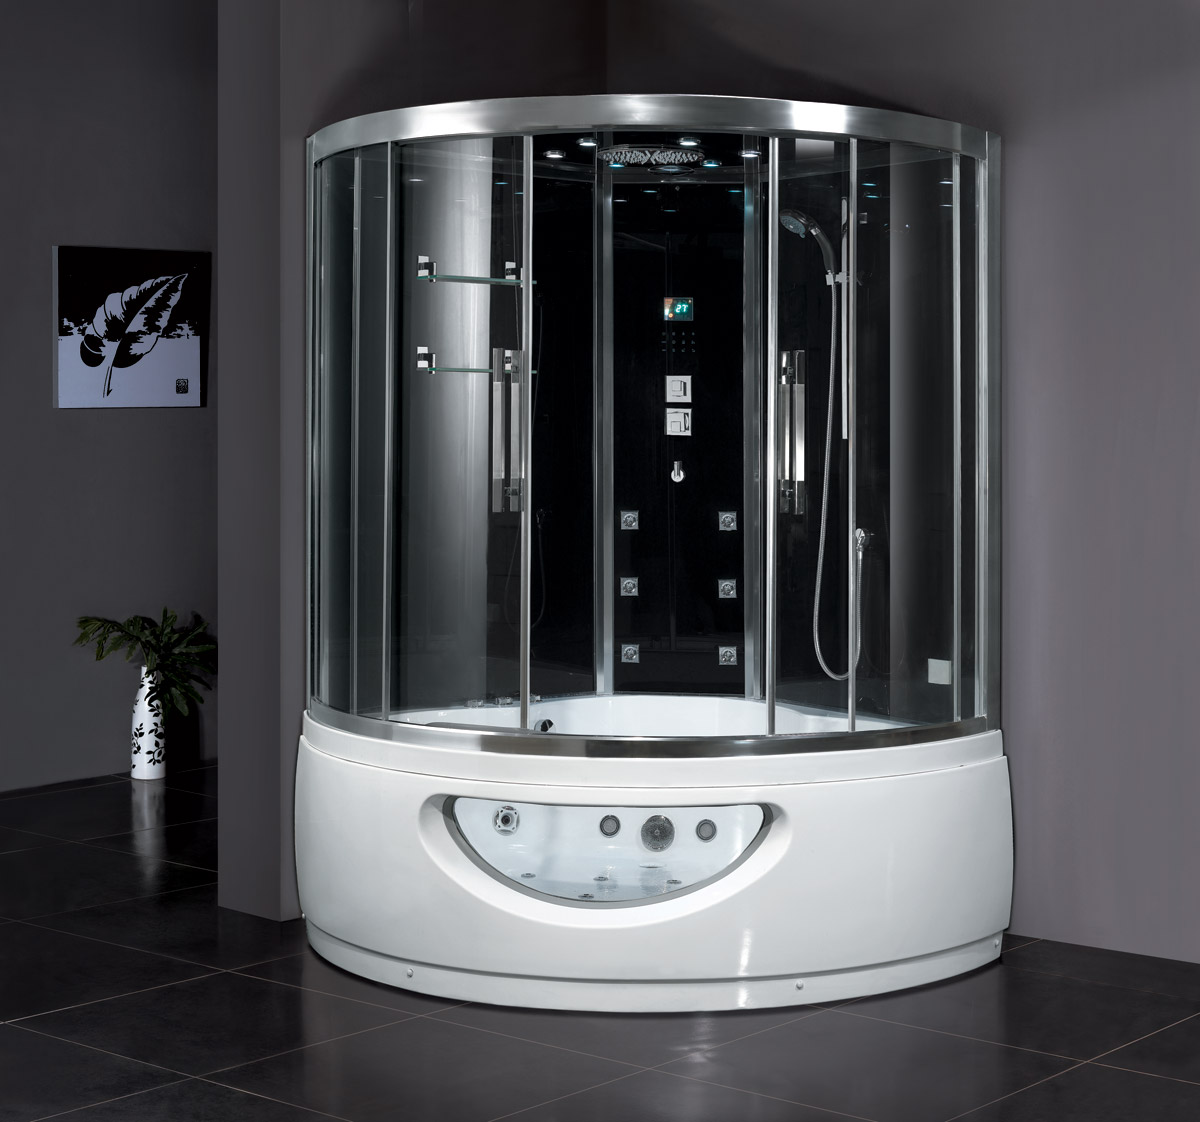 Claudius Steam Shower with Whirlpool Bathtub